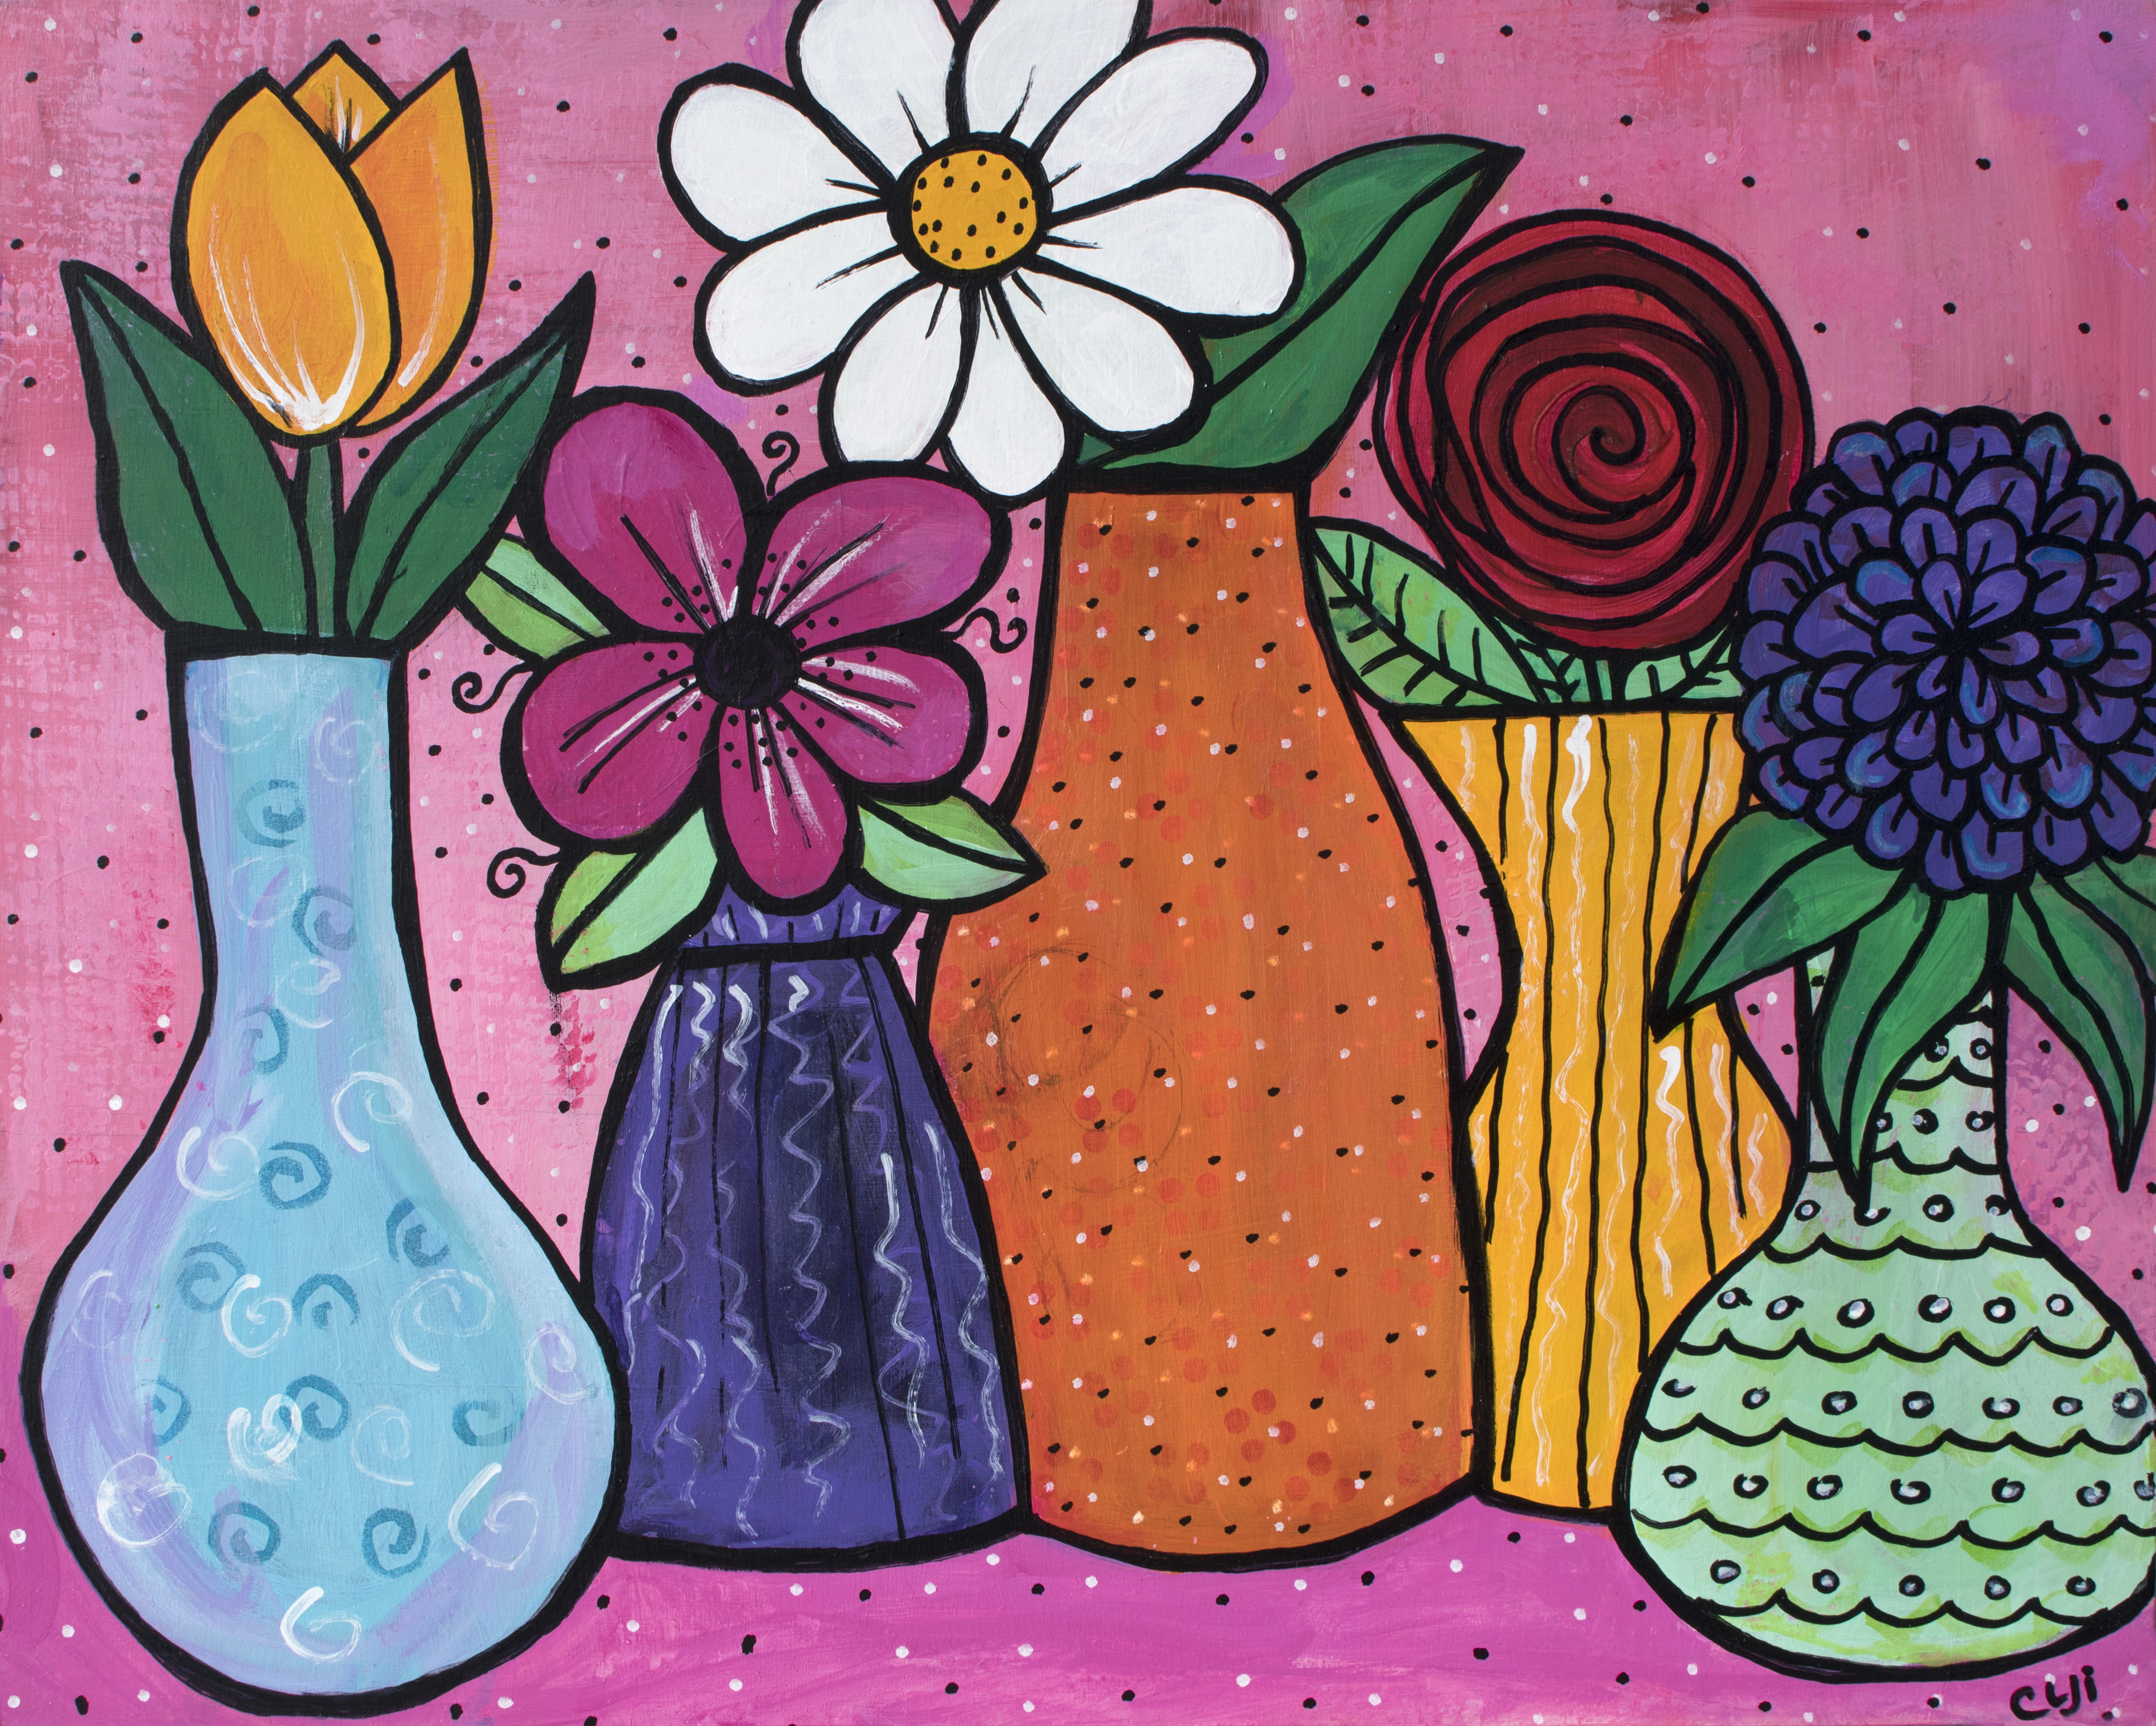 Five Vases of Flowers by Claudine Intner